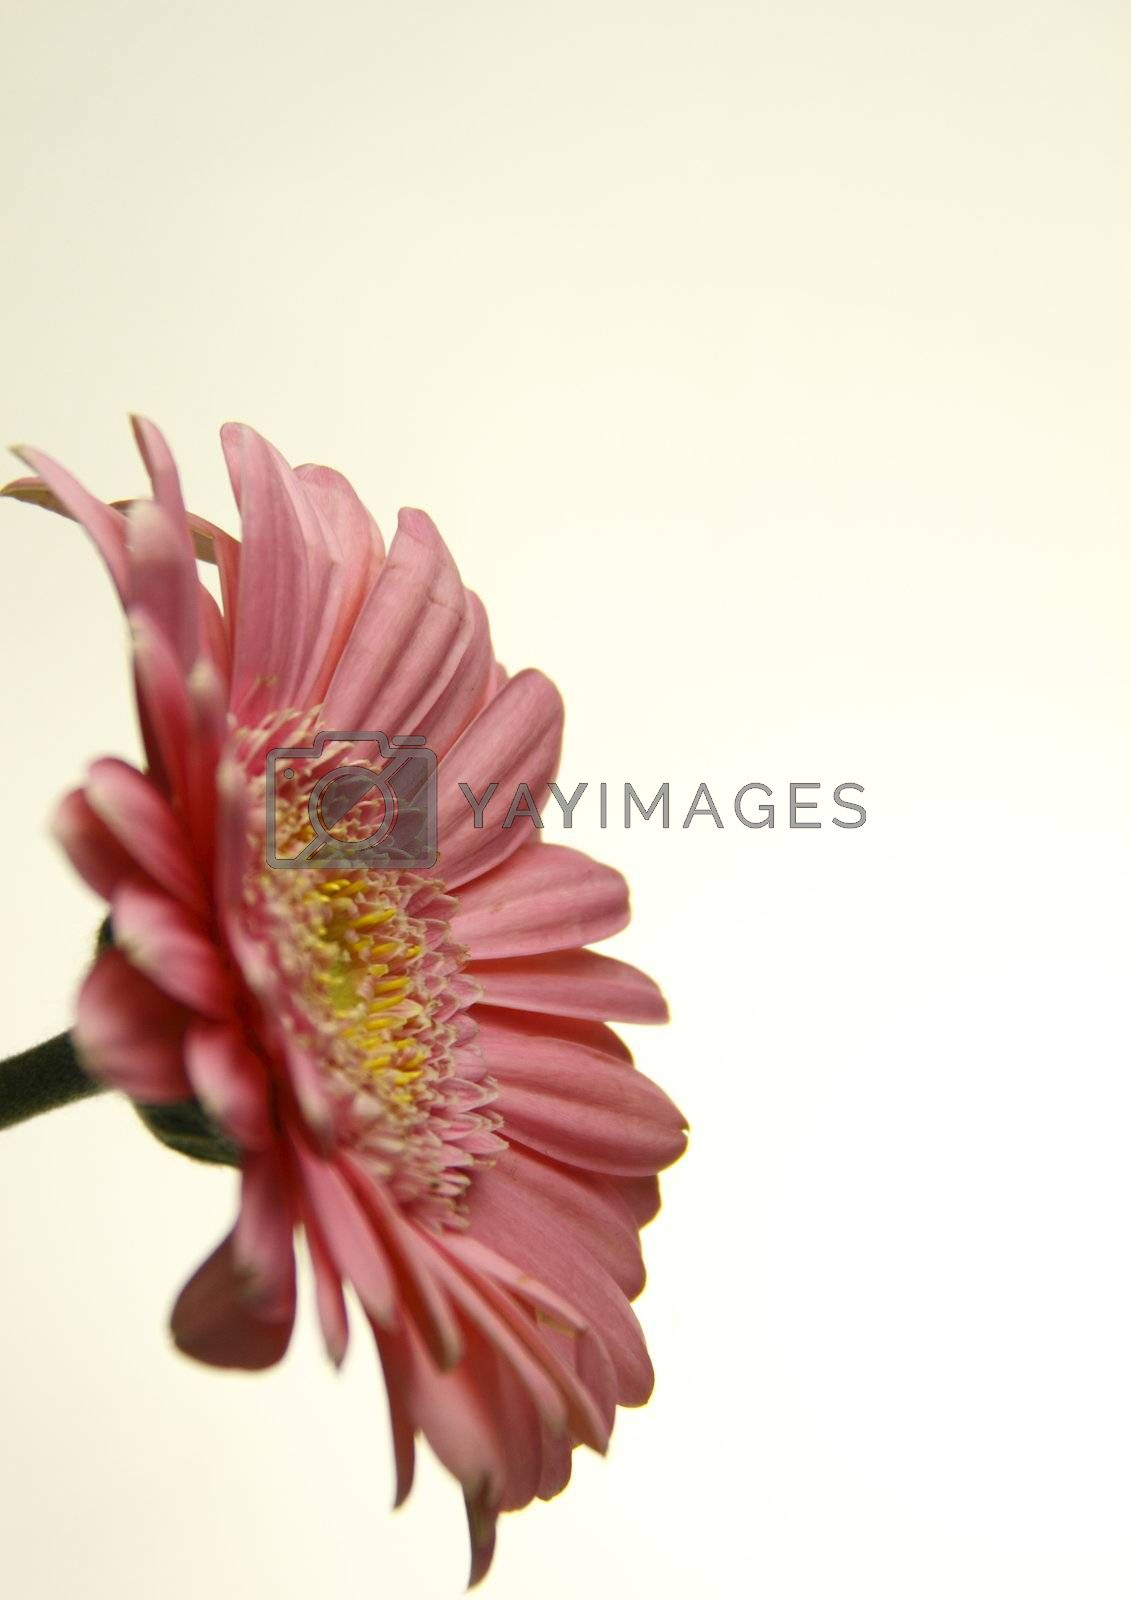 this delicate pink zinnia over a light background